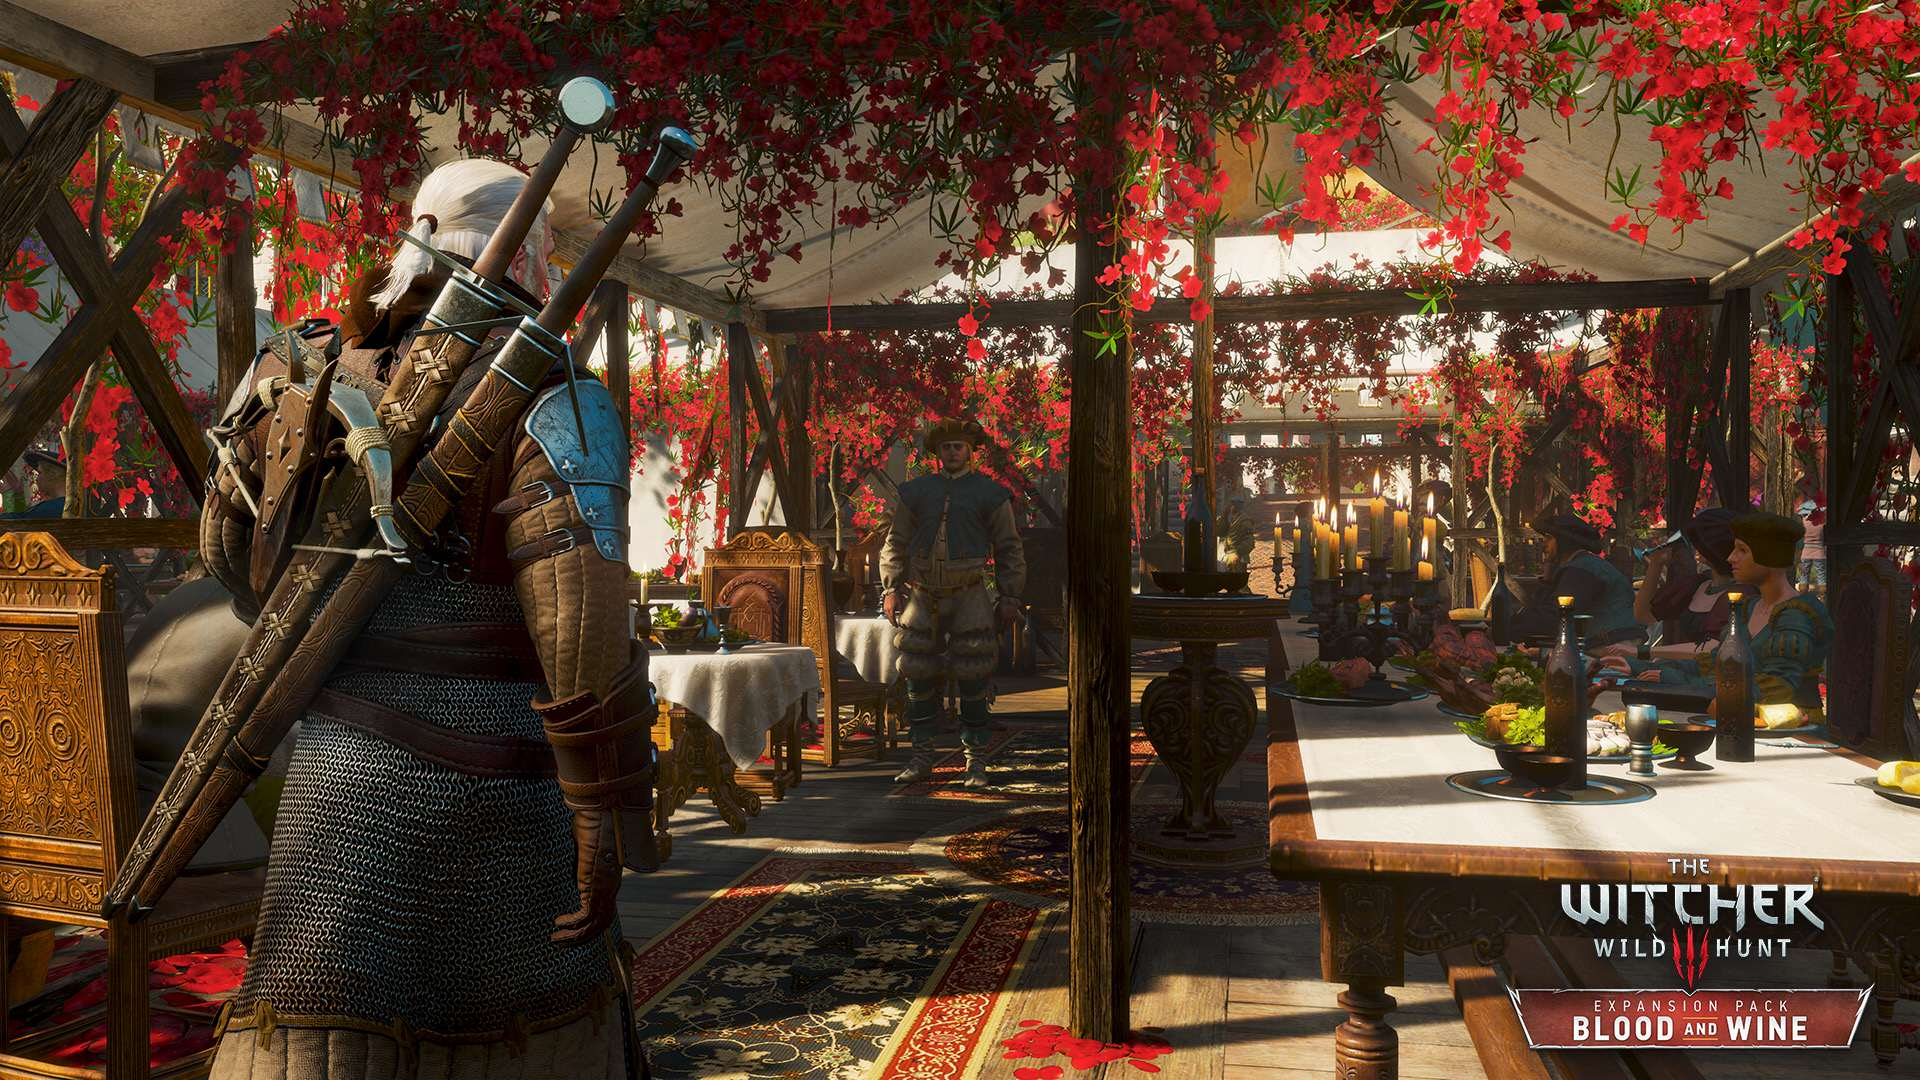 3052433 the witcher 3 wild hunt blood and wine beauclair is all kinds of fancy rgb en Gorgeously Gory Trailer For Witcher 3s Blood And Wine DLC Drops